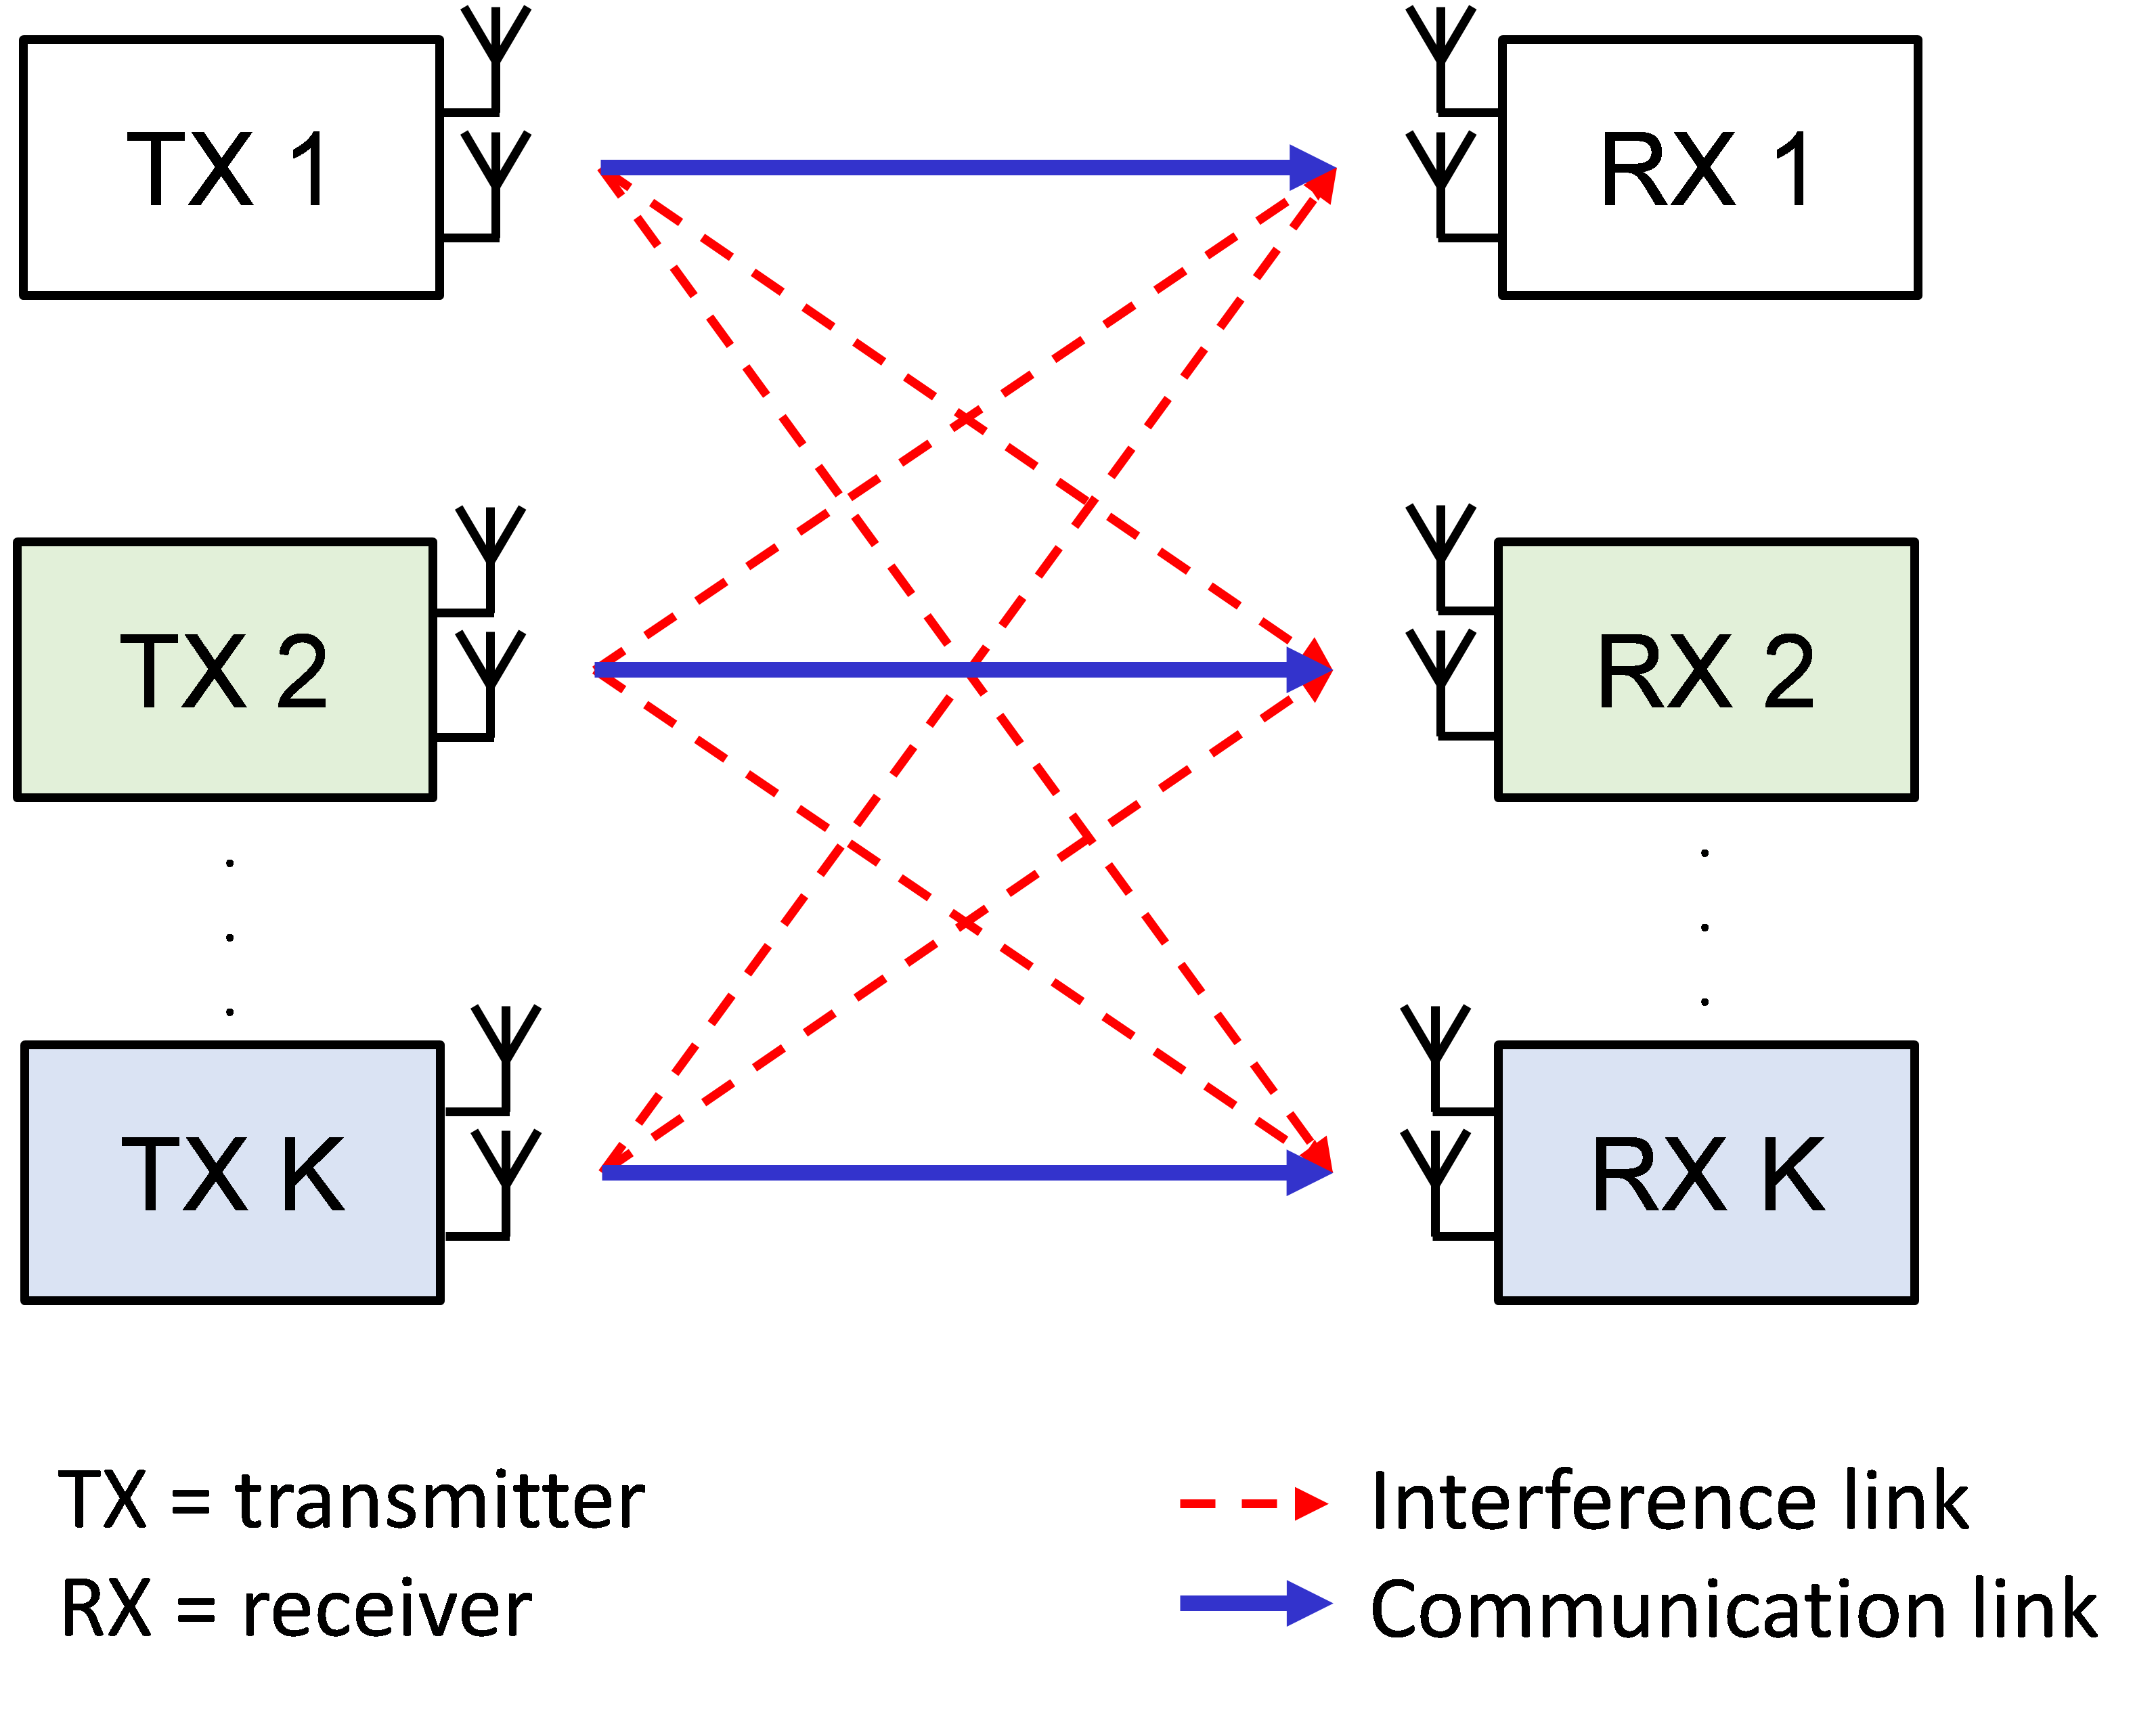 Distributed interference cancelation based on outdated channel gain information